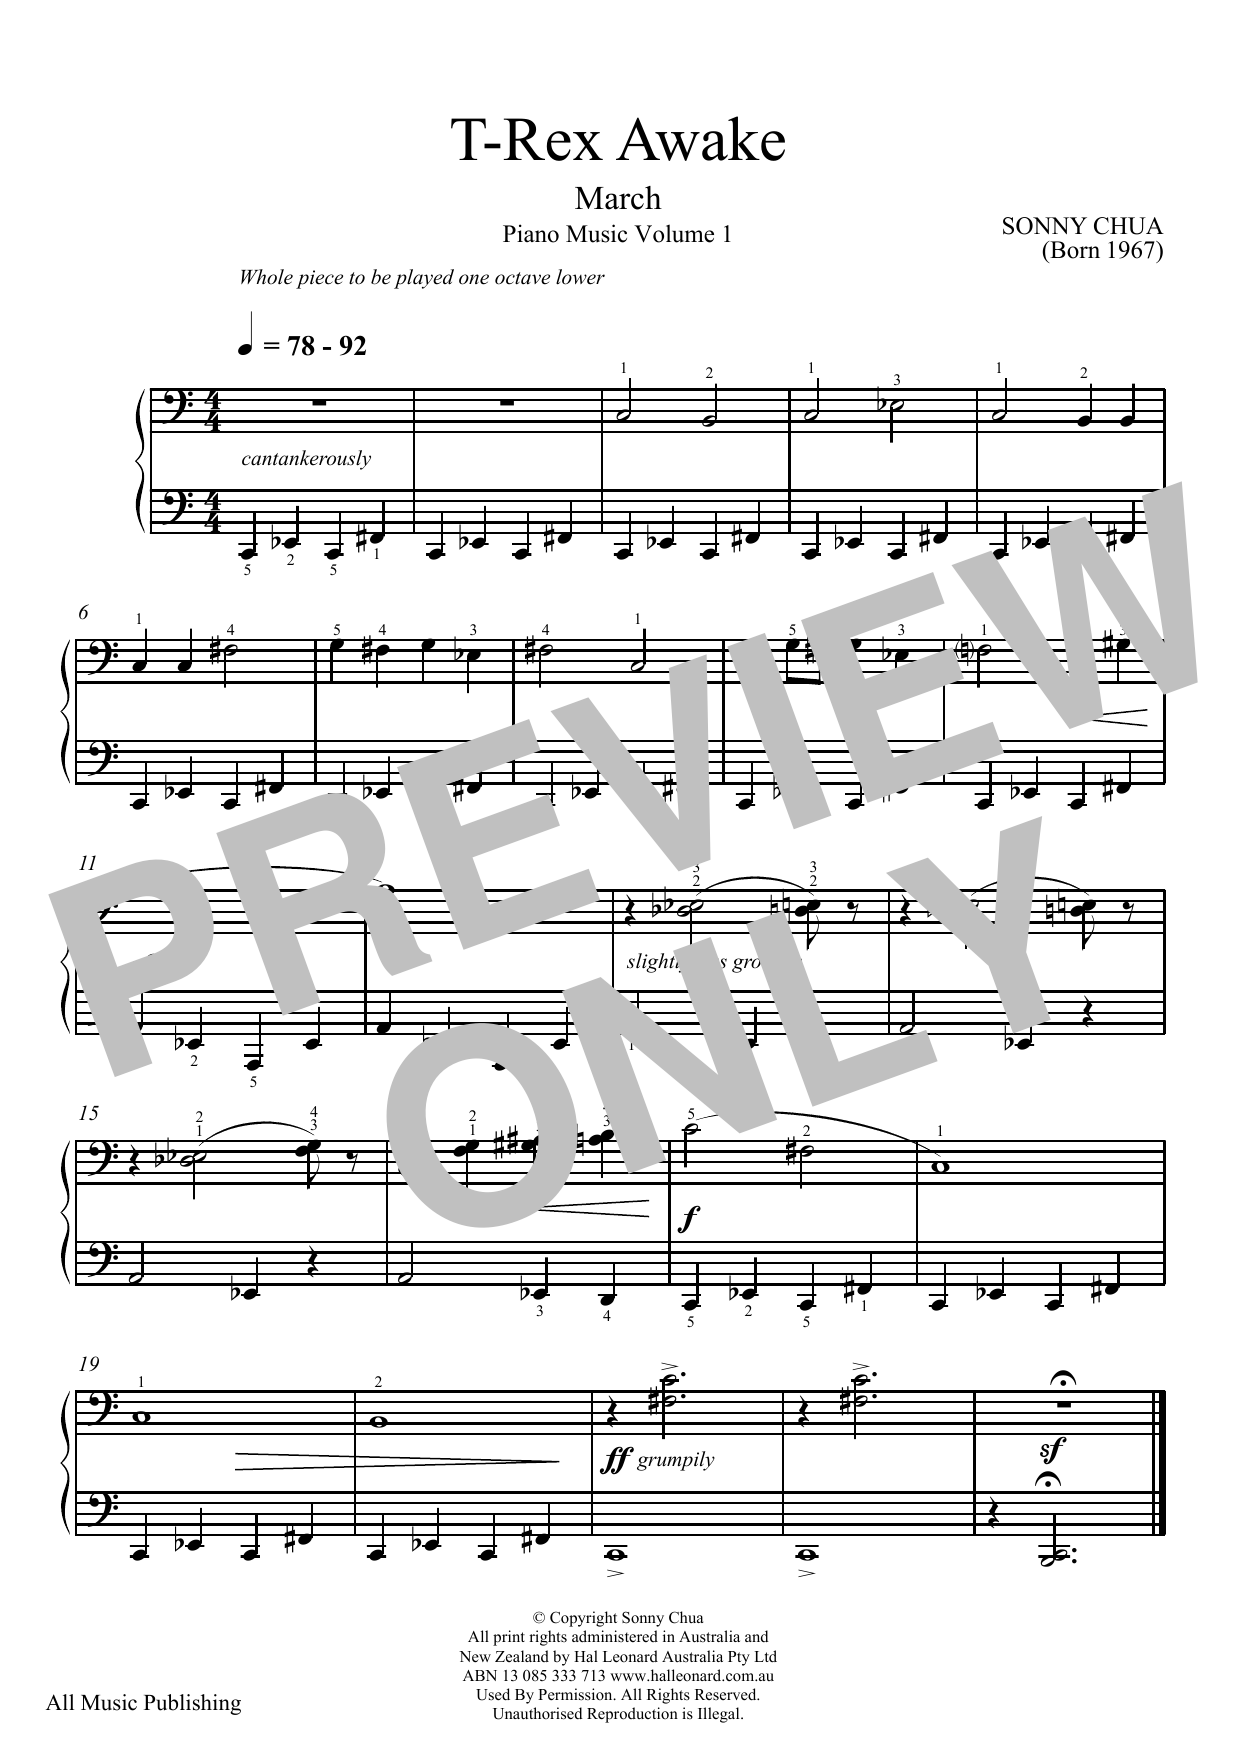 Download Sonny Chua 'T-Rex Awake (From Piano Music Vol 1)' Digital Sheet Music Notes & Chords and start playing in minutes